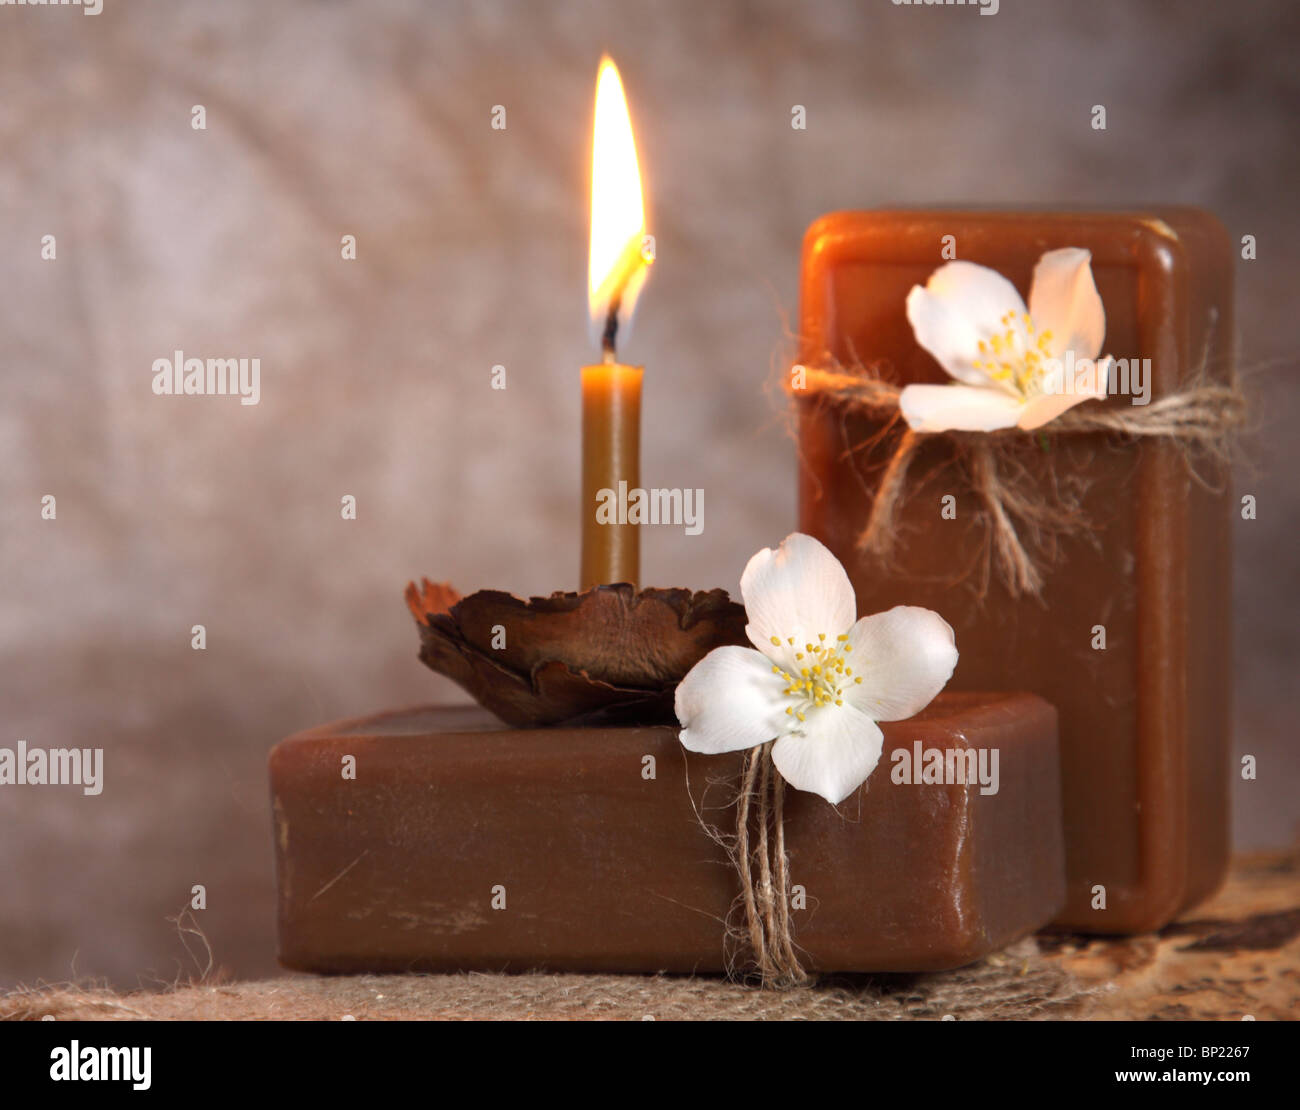 Natural handmade soap and candle. Spa - Stock Image